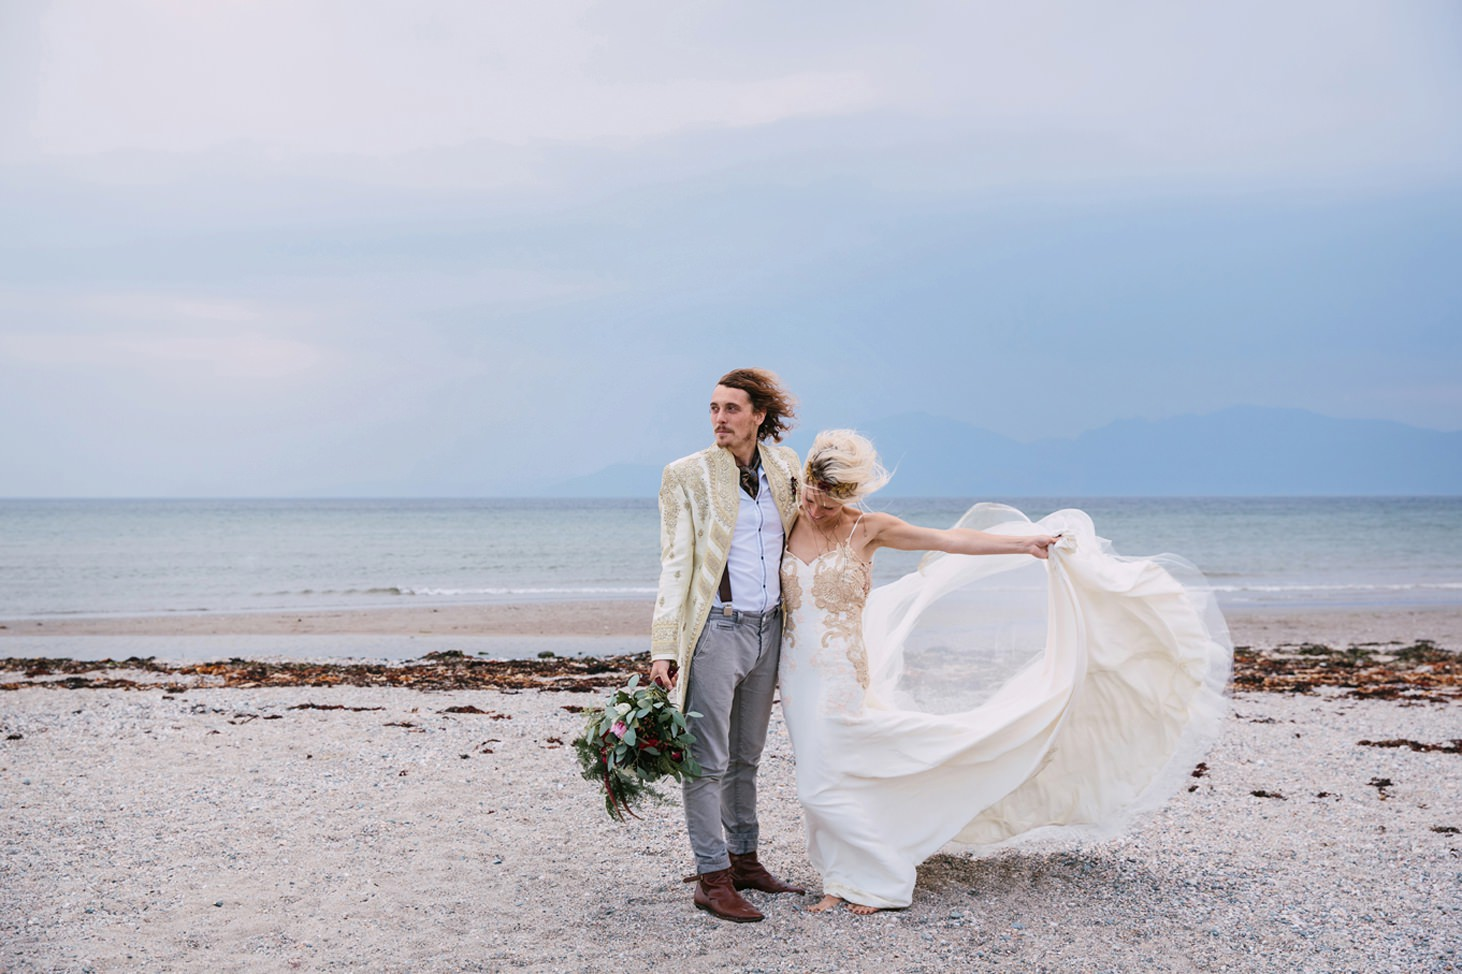 sle of bute wedding photography bride and groom on windy beach